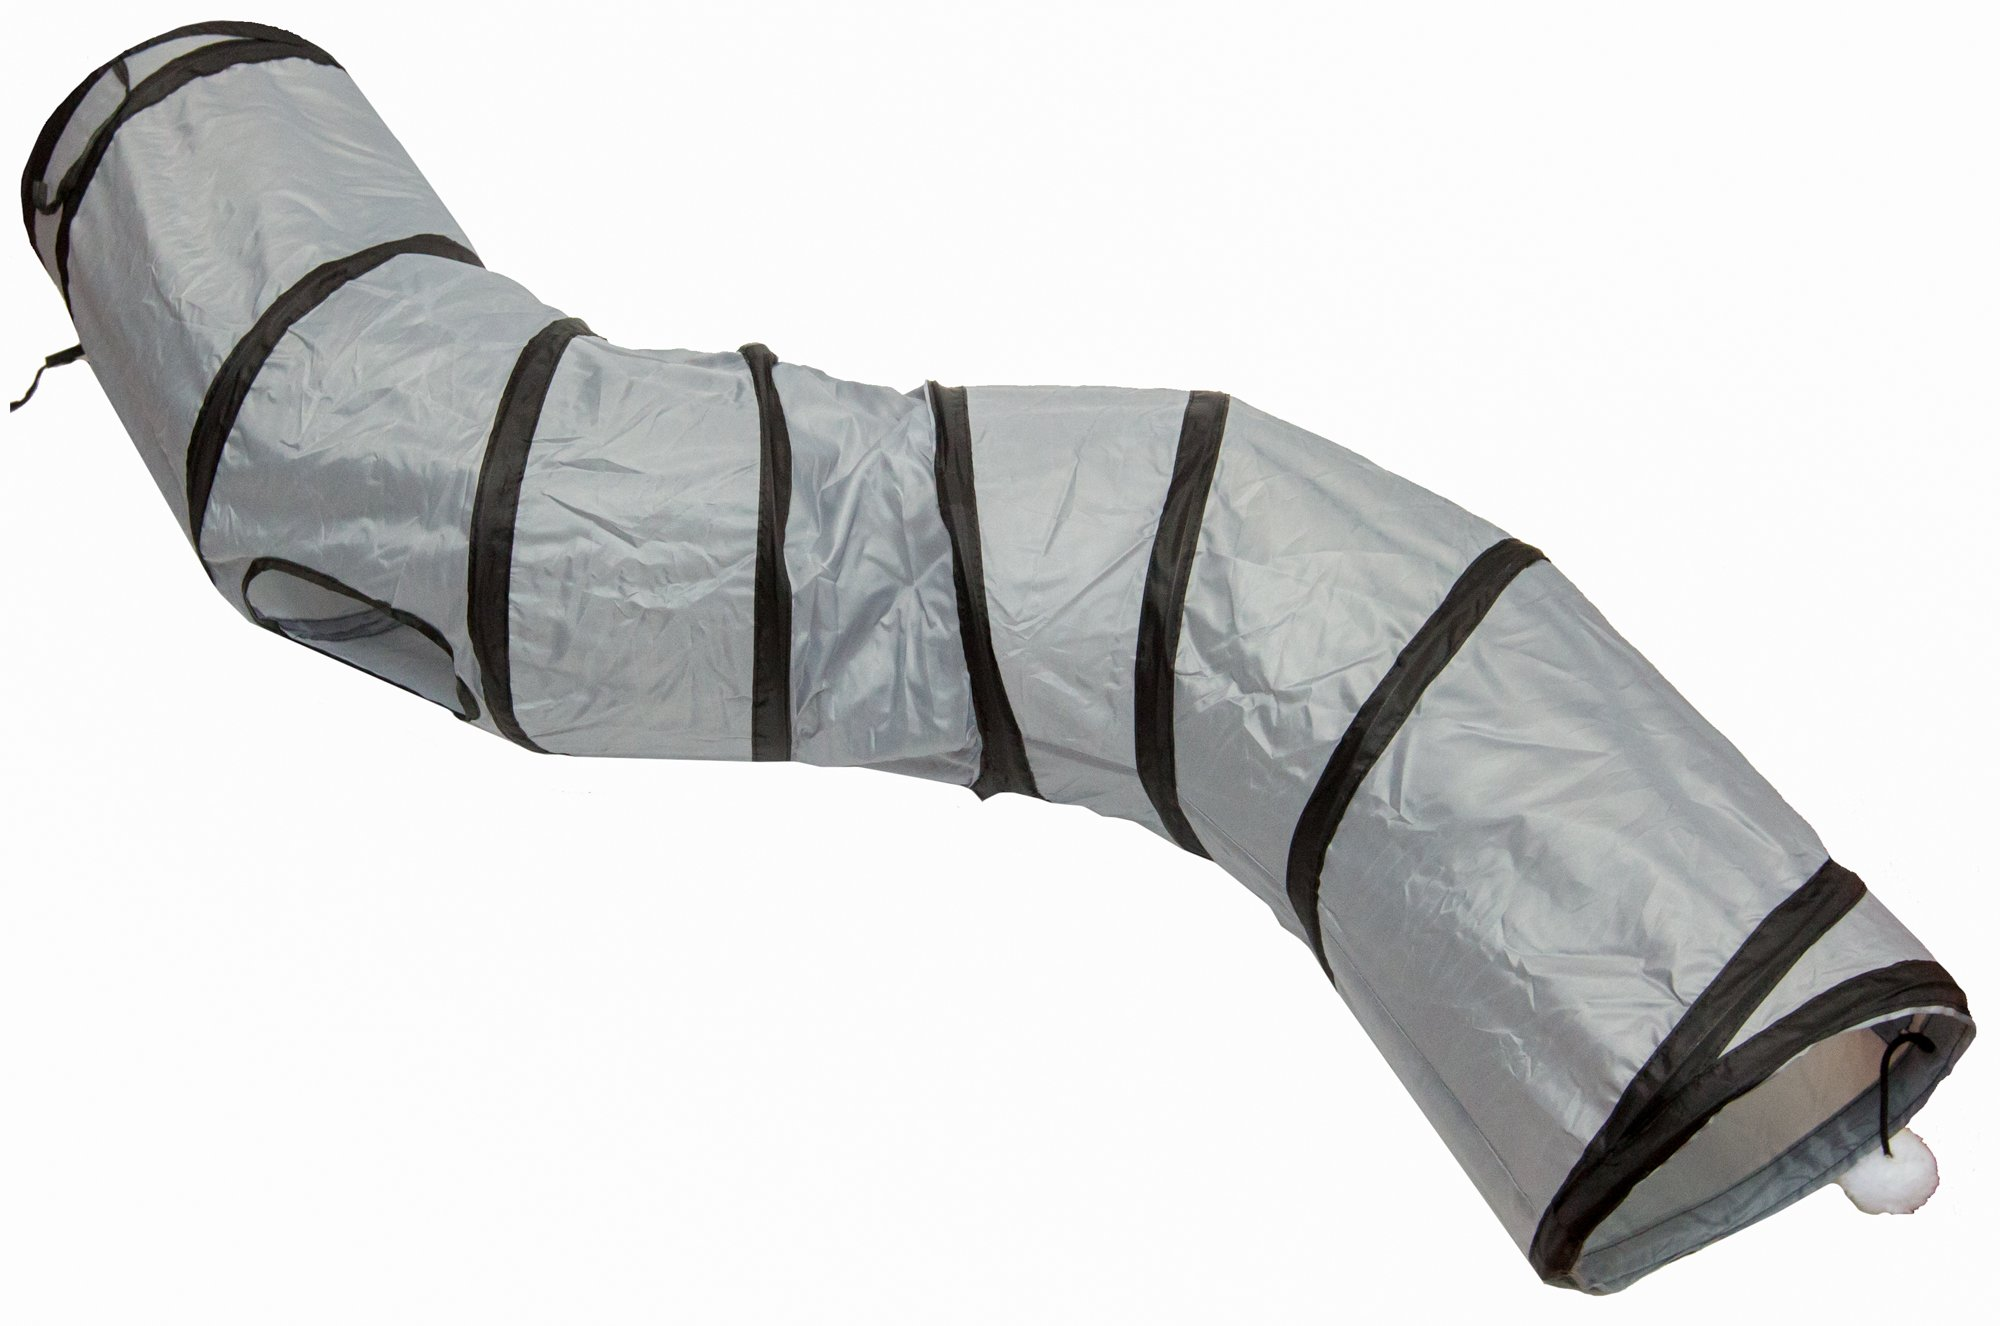 PetLike S Way Cat Tunnel By Collapsible Cat Tube For Kitty Exercising, Entertainment And Fun Play Pet Friendly, Comfortable Hideaway | Durable And Joyful Den For Rabbits, Kittens And Small Dogs